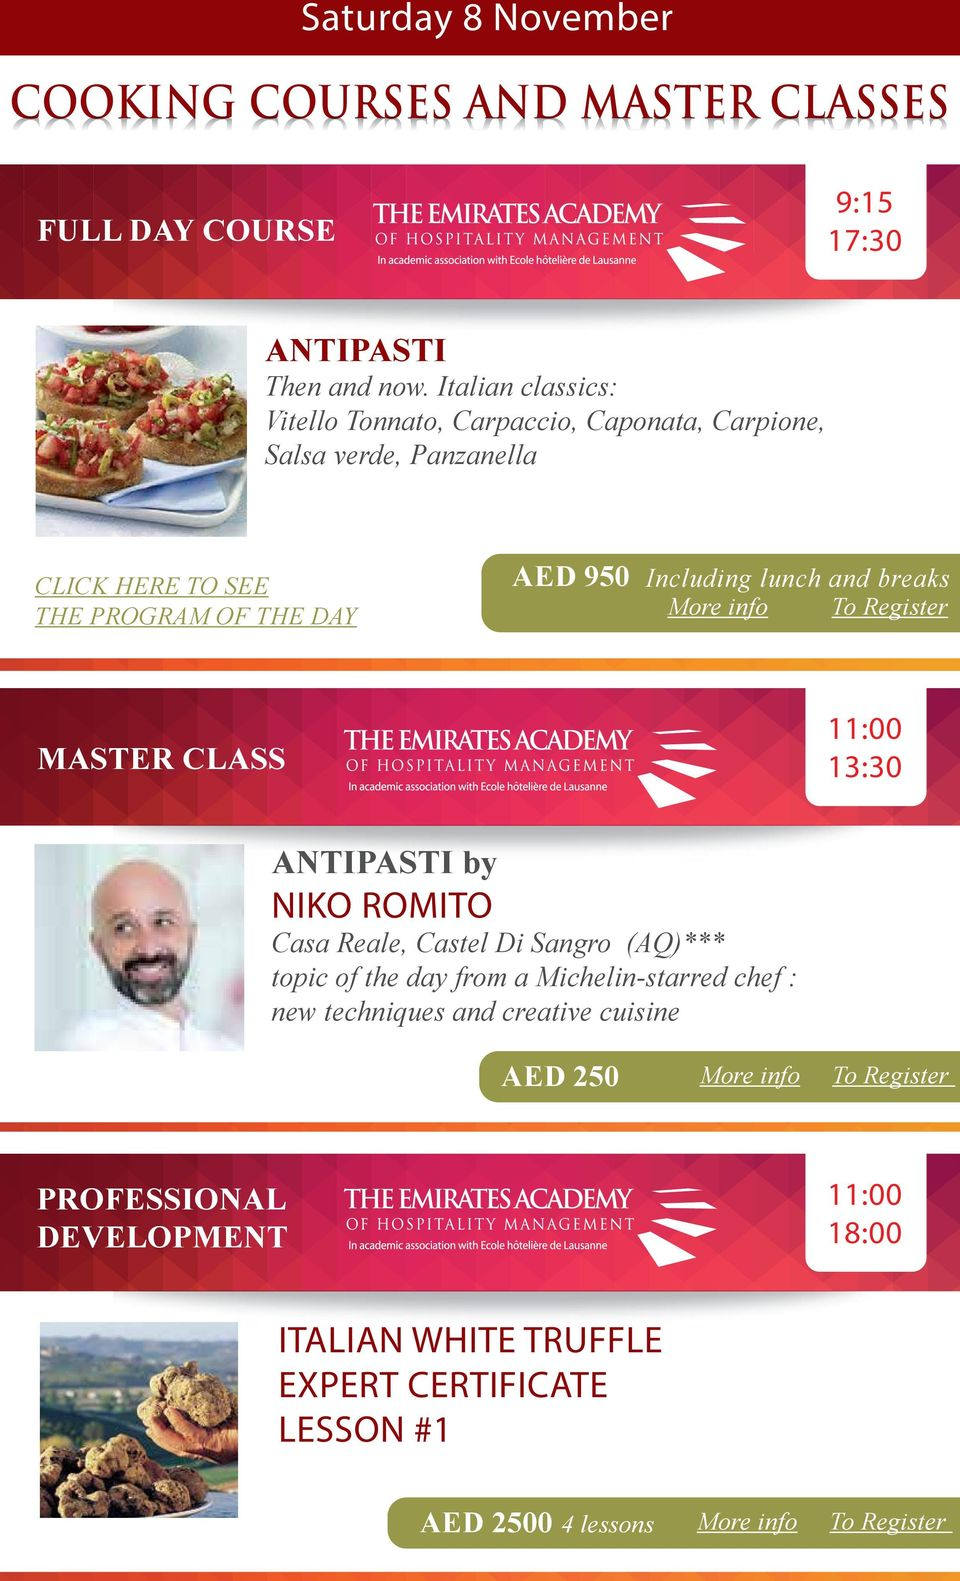 Including lunch and breaks MASTER CLASS 13:30 ANTIPASTI by NIKO ROMITO Casa Reale, Castel Di Sangro (AQ)*** topic of the day from a